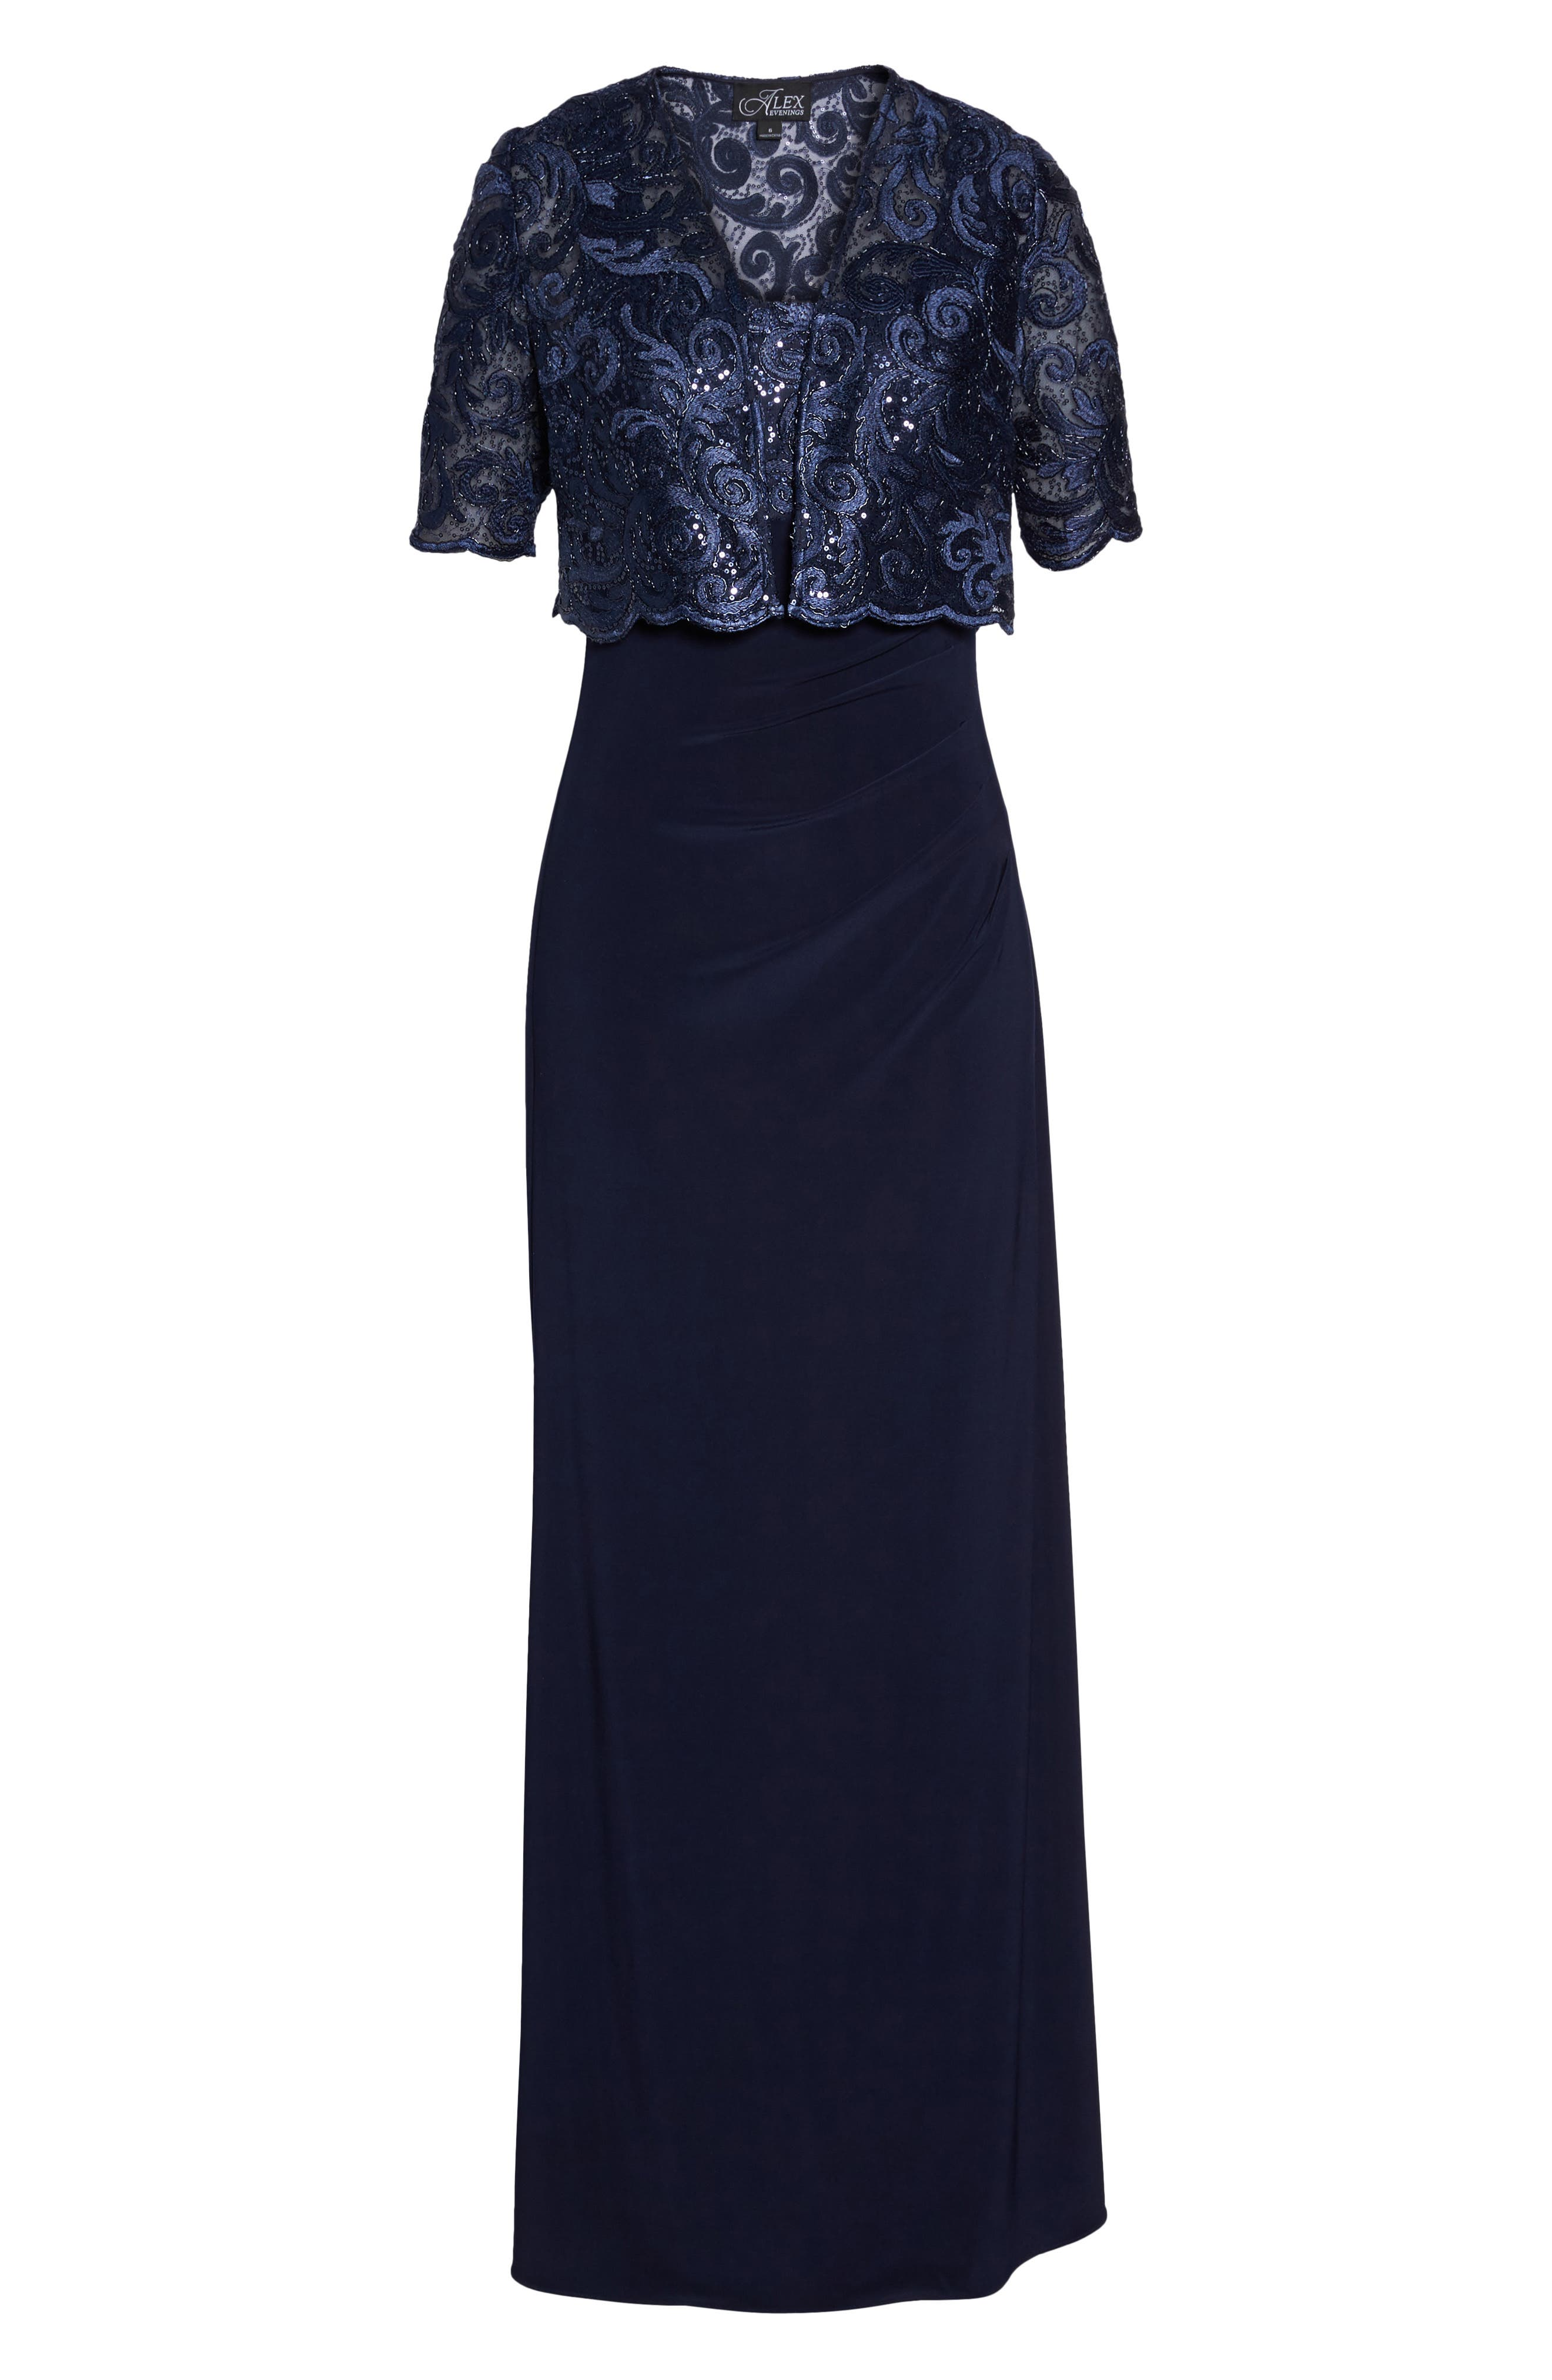 Sequin Embellished Gown with Bolero Jacket,                             Alternate thumbnail 6, color,                             Navy